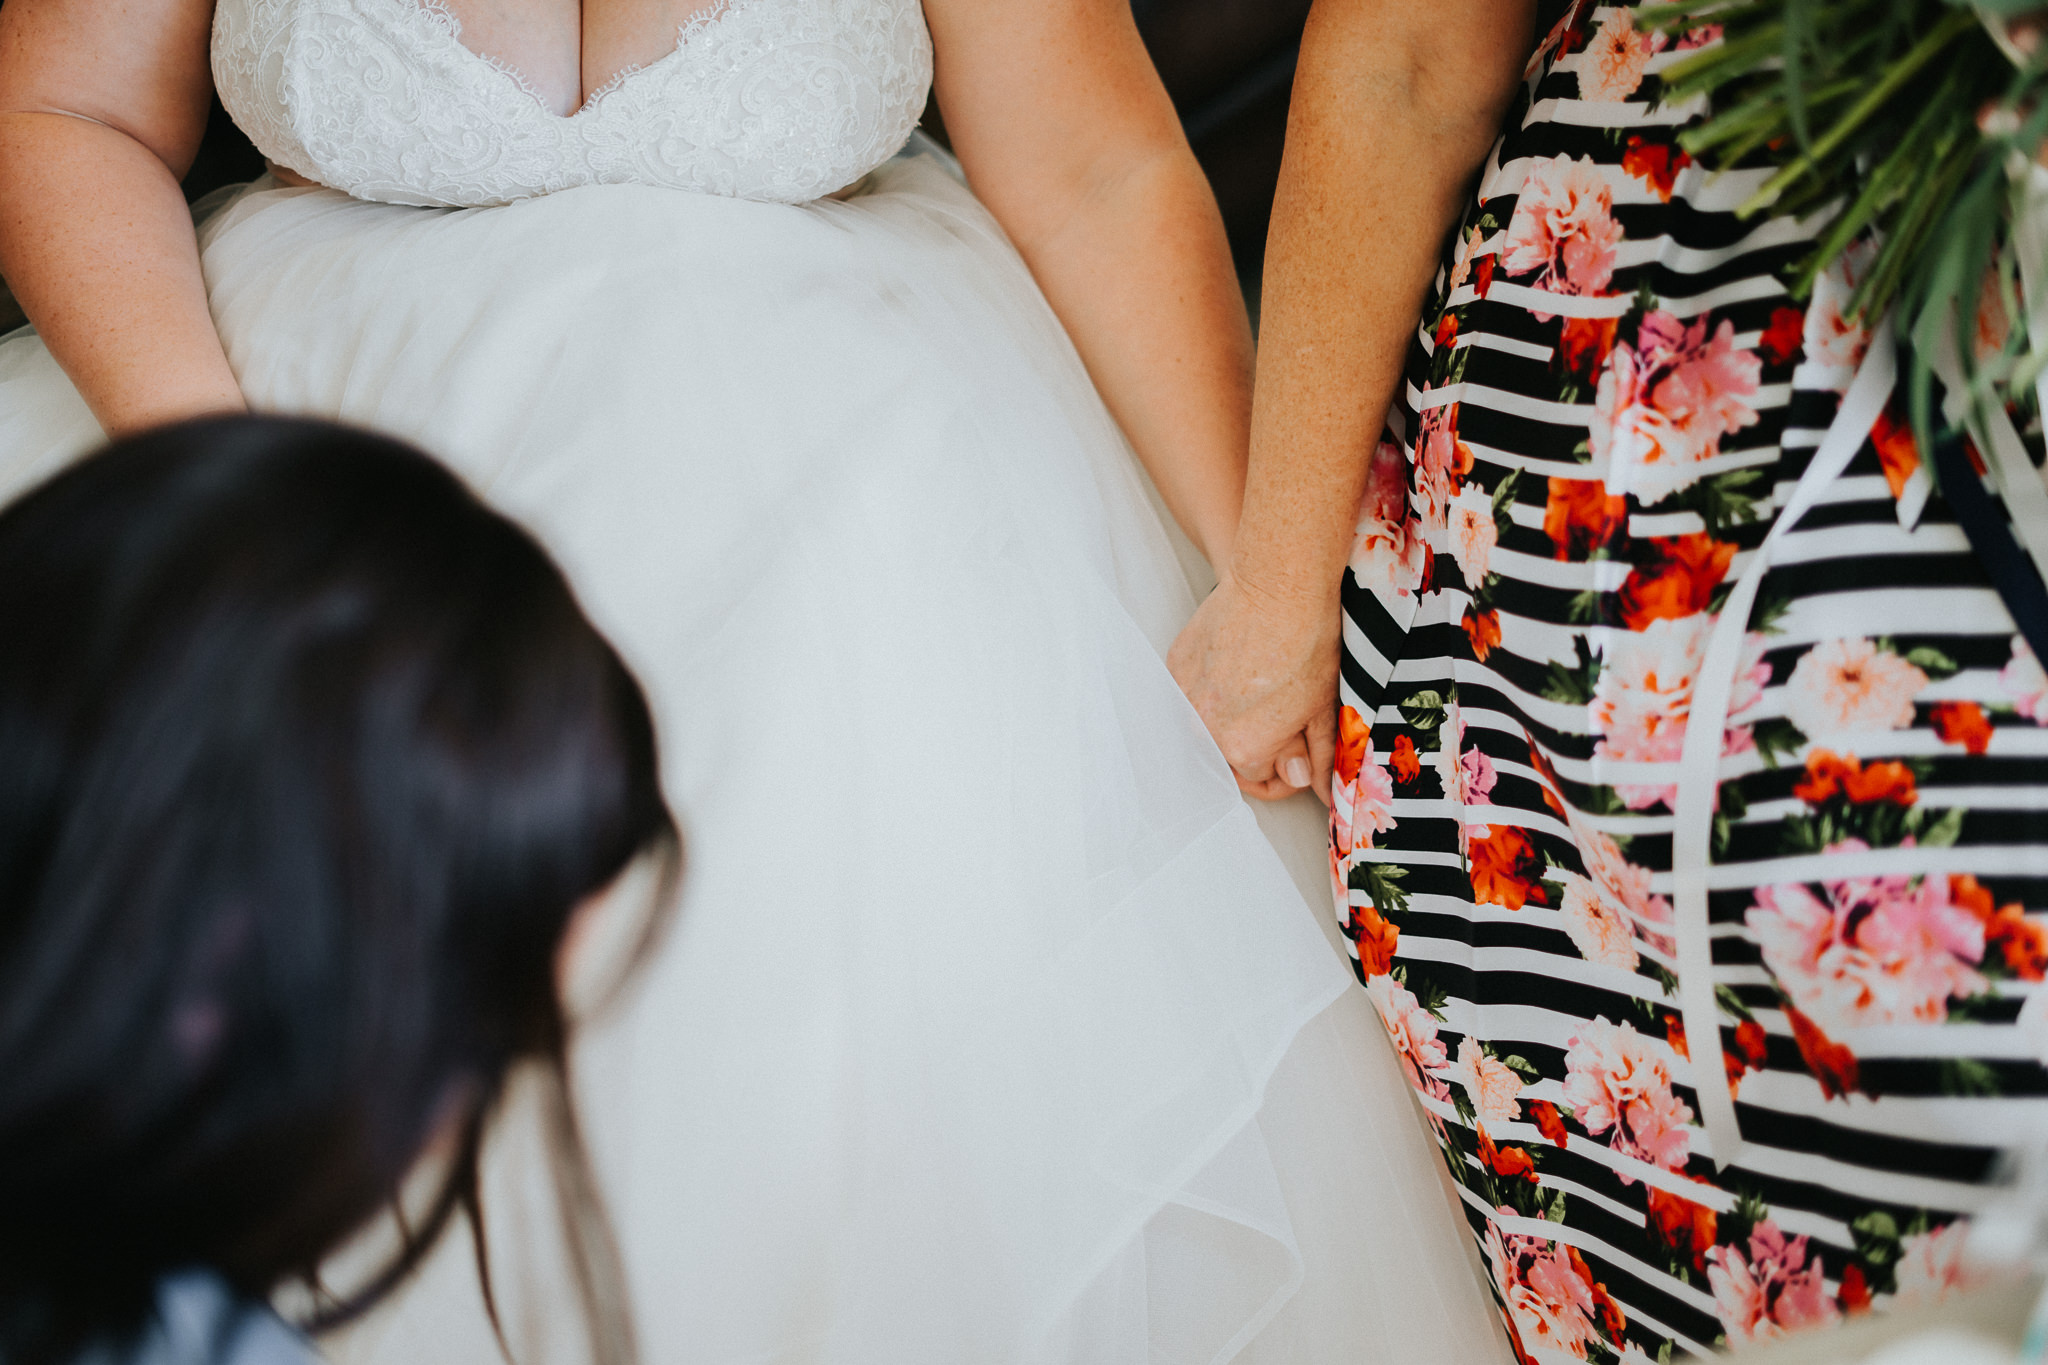 Bride Mother Hold Hands getting ready photographer Alfred Tang Best Portland